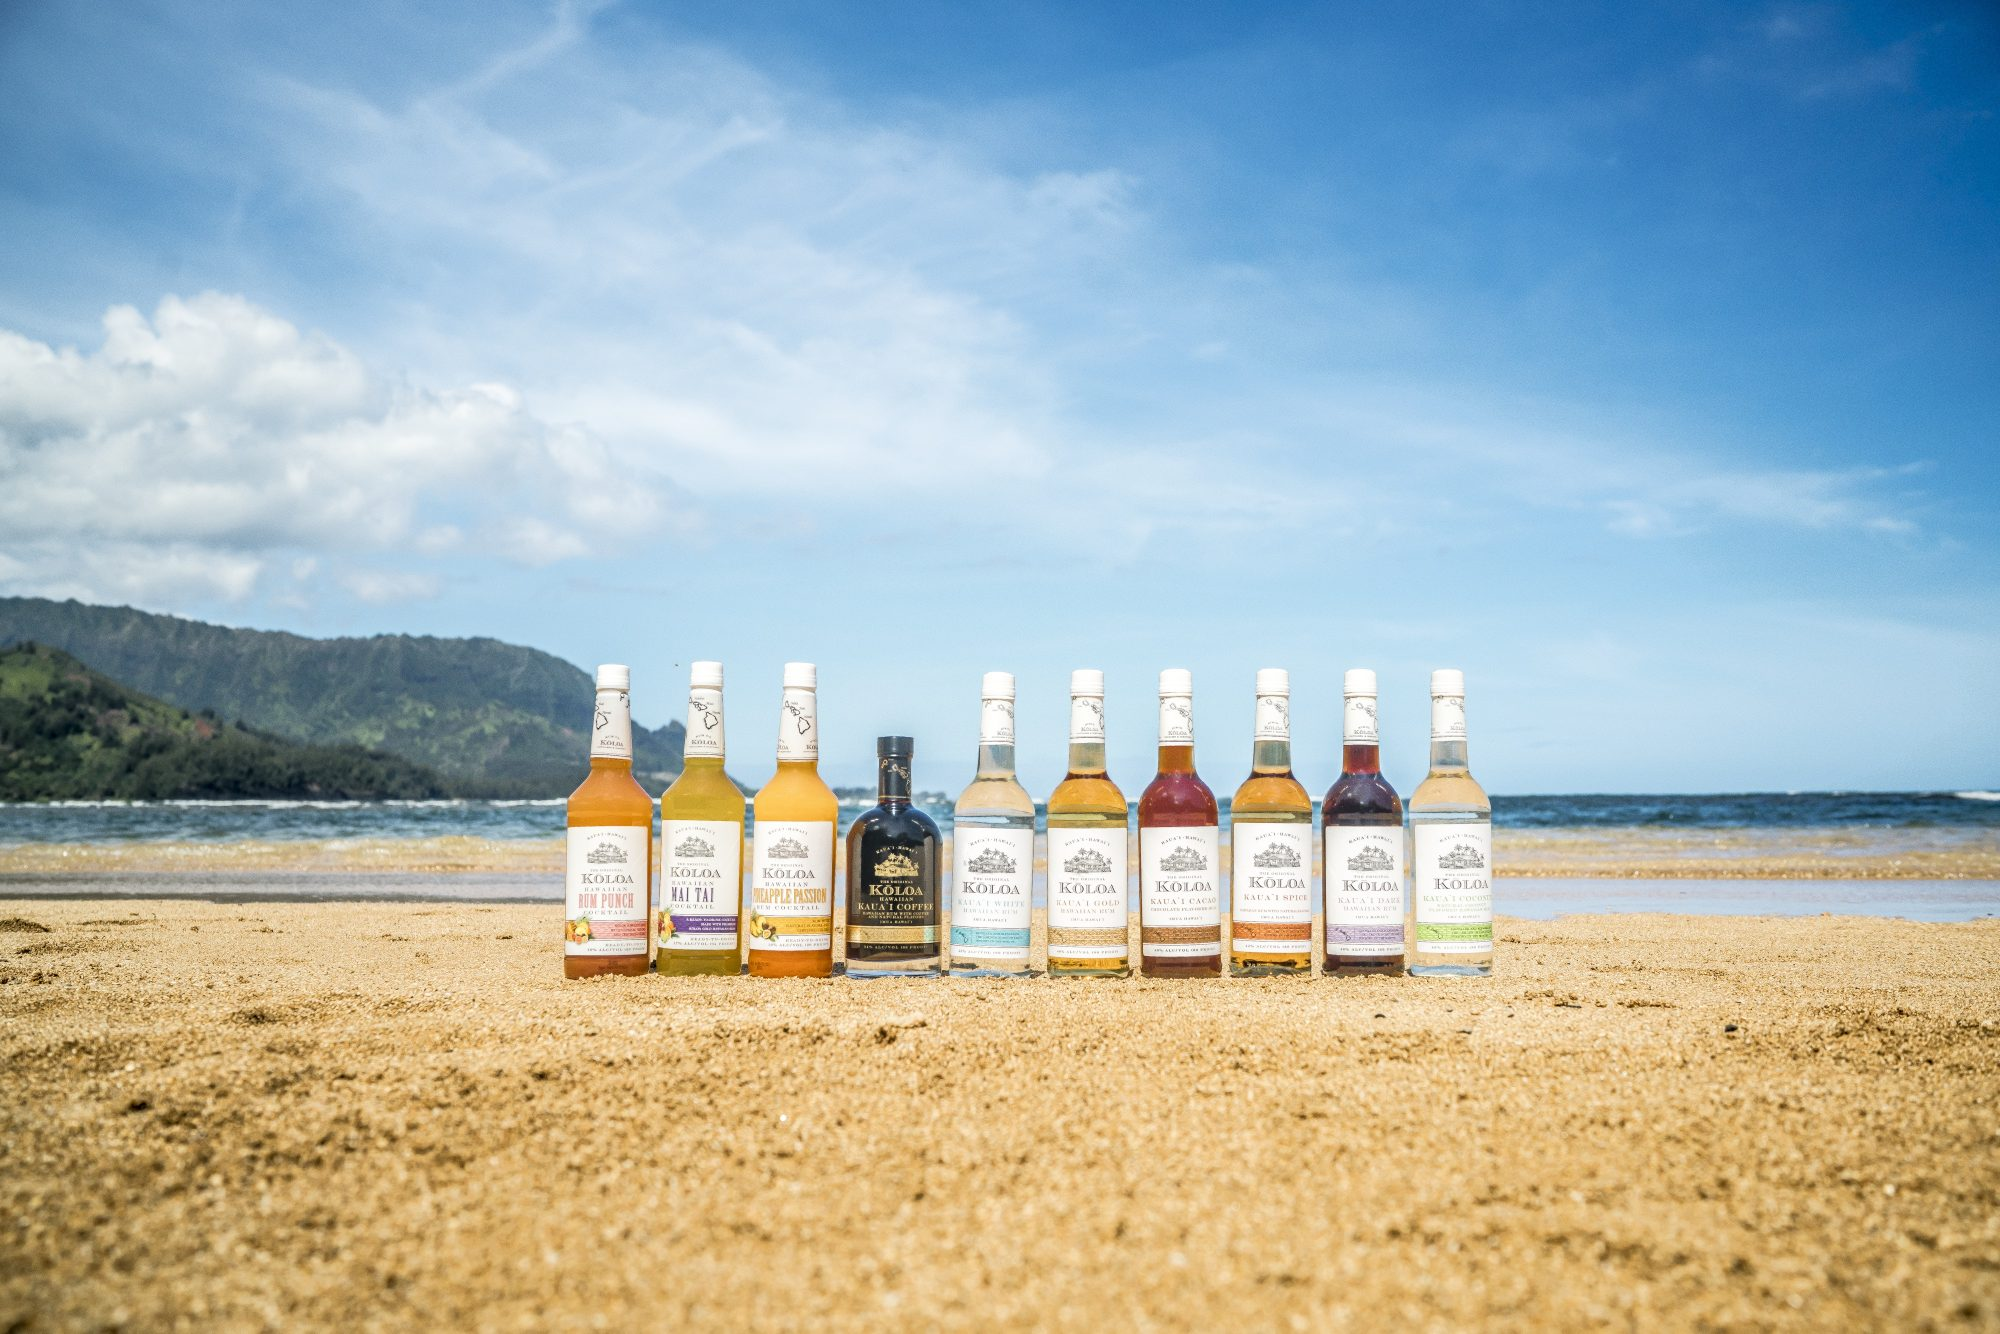 Koloa's line of rums and bottled cocktails lined up on a beach